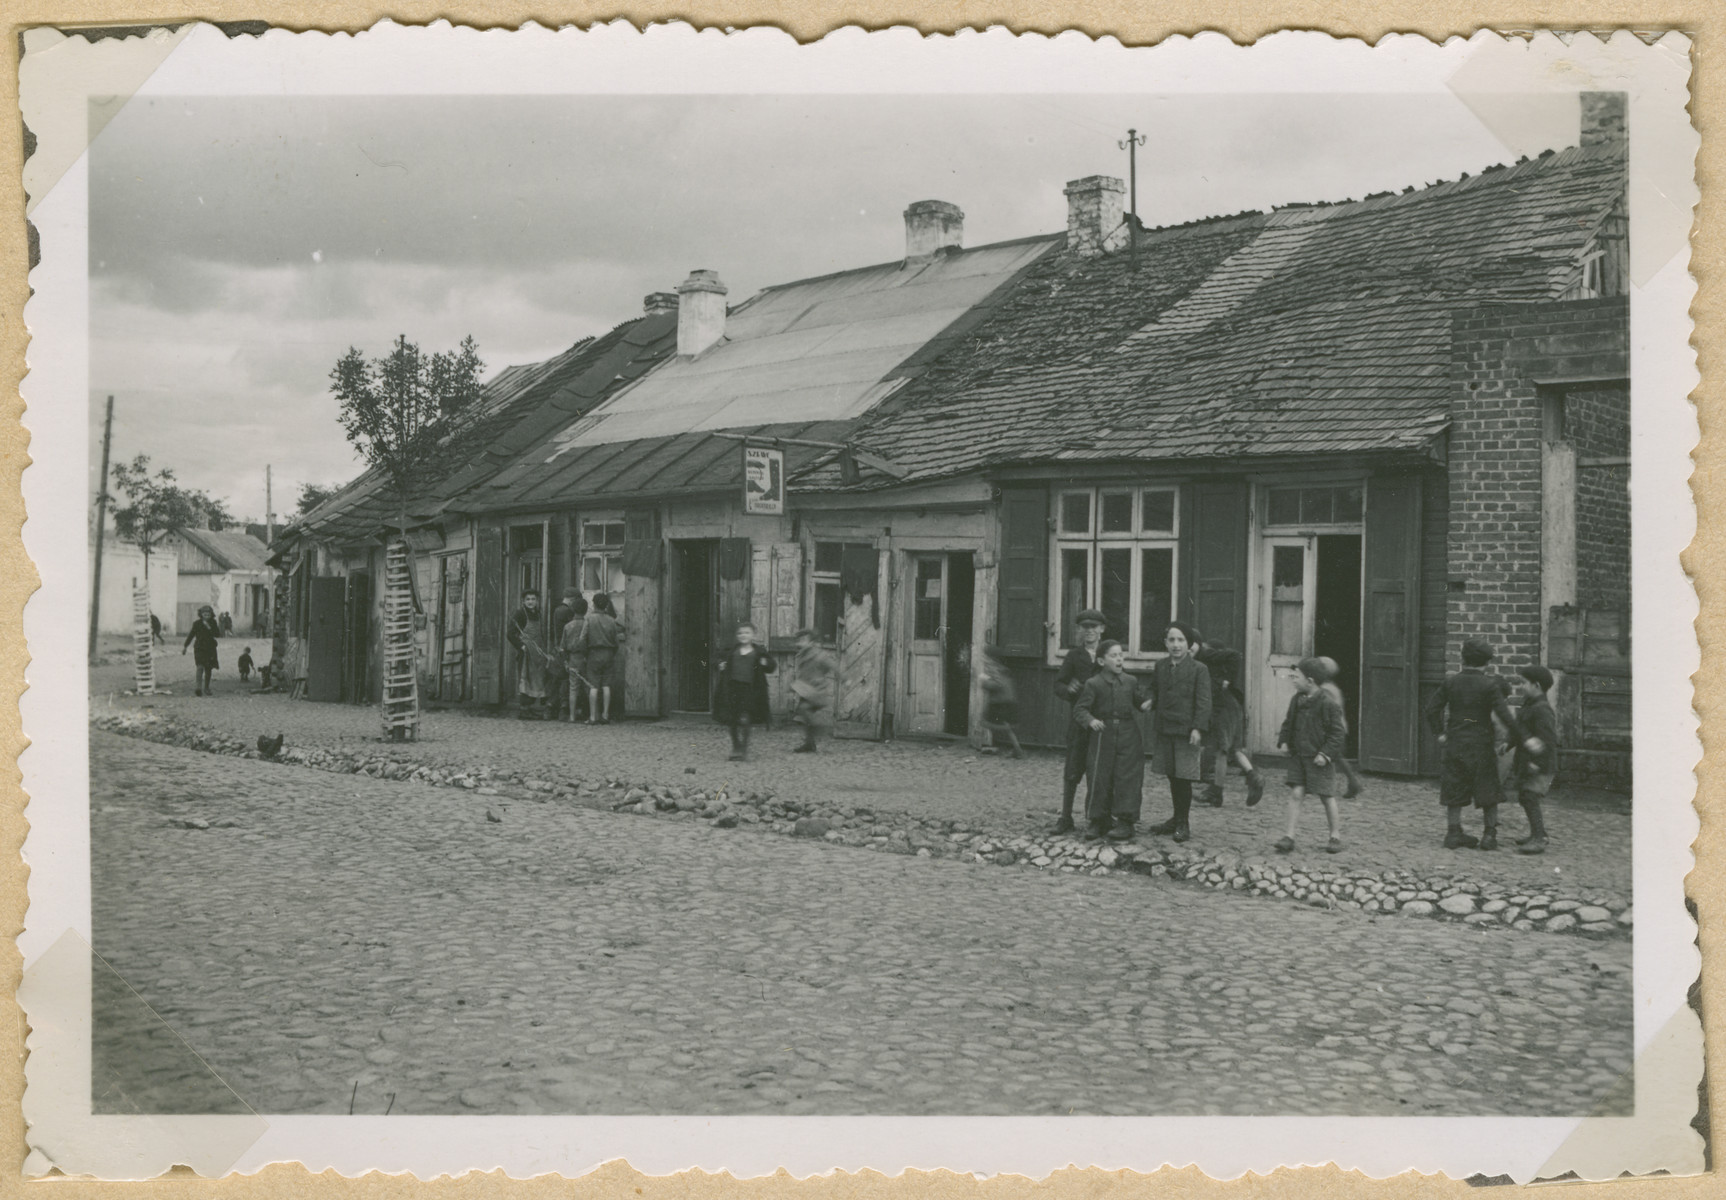 Children play in the street of an unidentified Polish town [probably in the Lublin region].